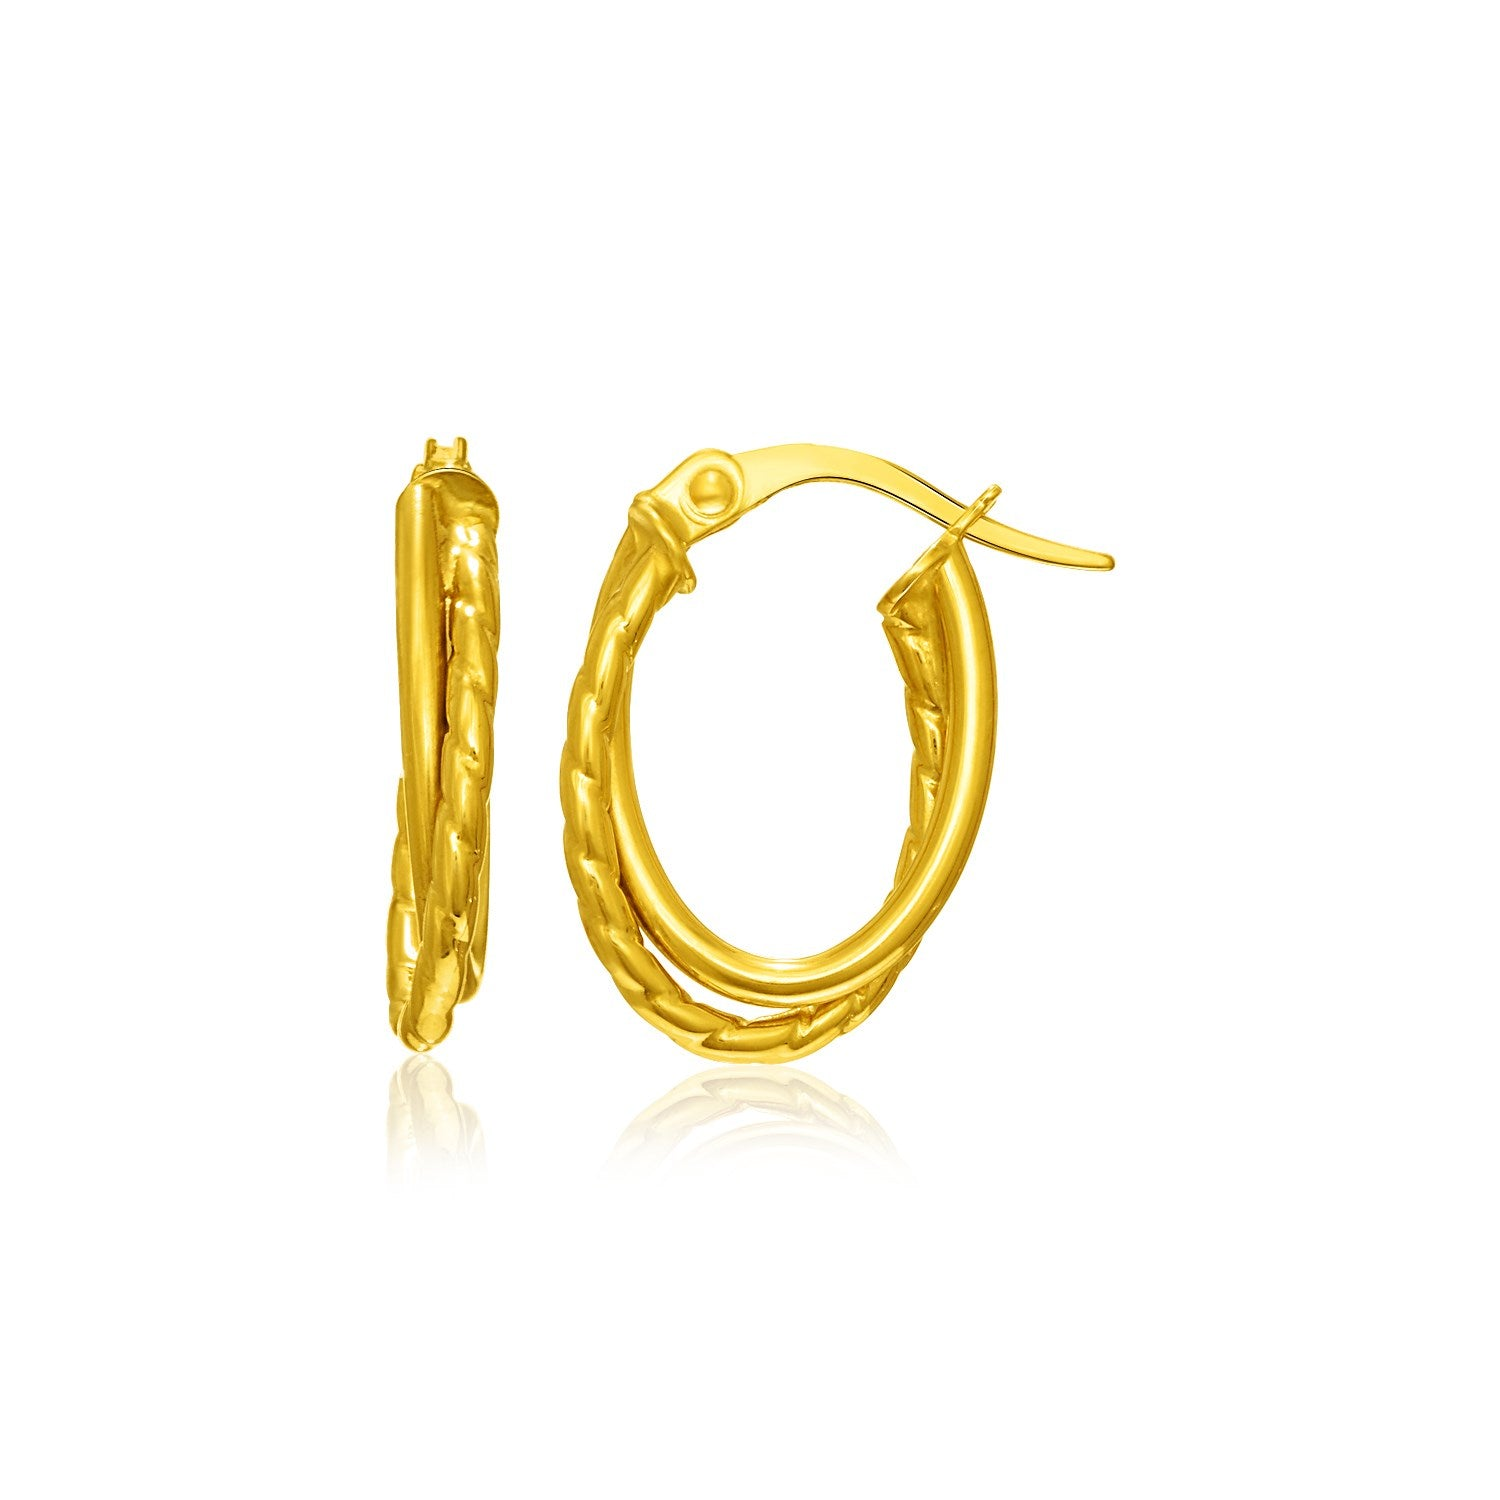 14K Yellow Gold Textured Double Row Hoop Earrings